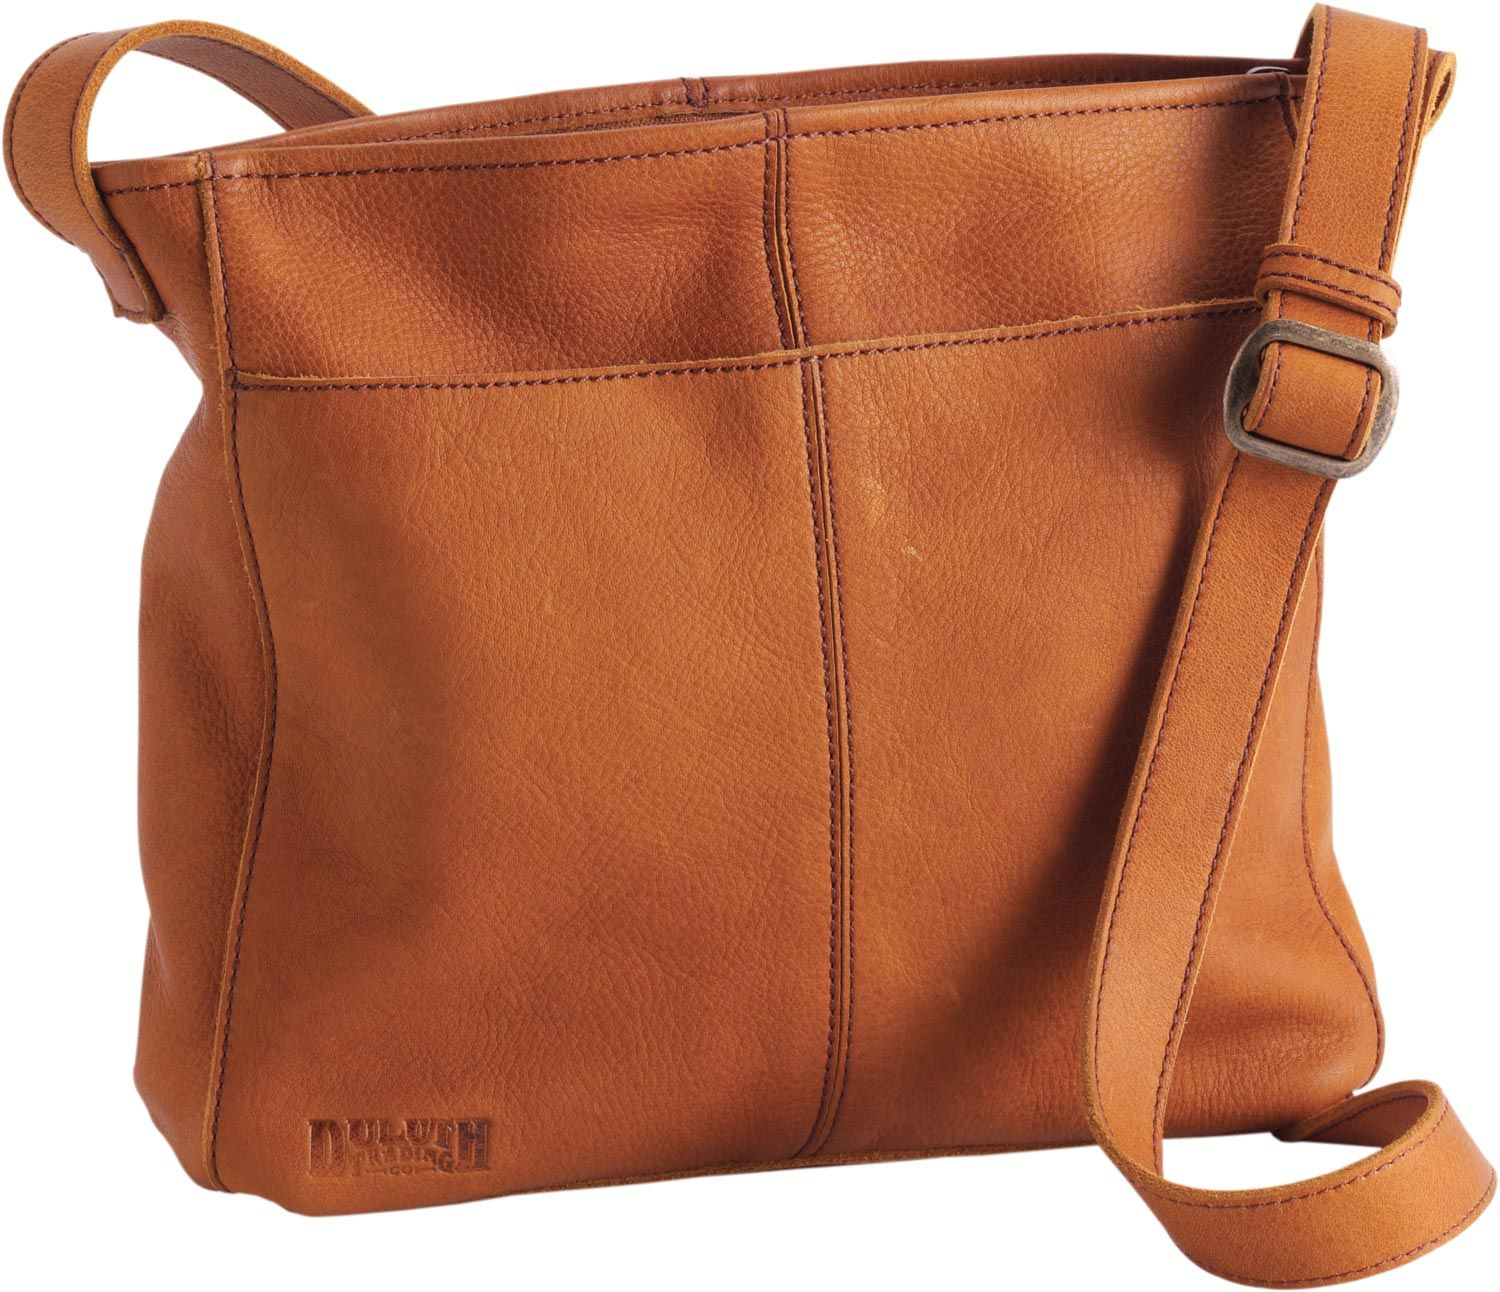 4069db0bf9d8 The Women s Lifetime Leather Medium Sling Bag is big enough to hold all you  need without toppling you over. The full-grain cowhide variations makes  each bag ...